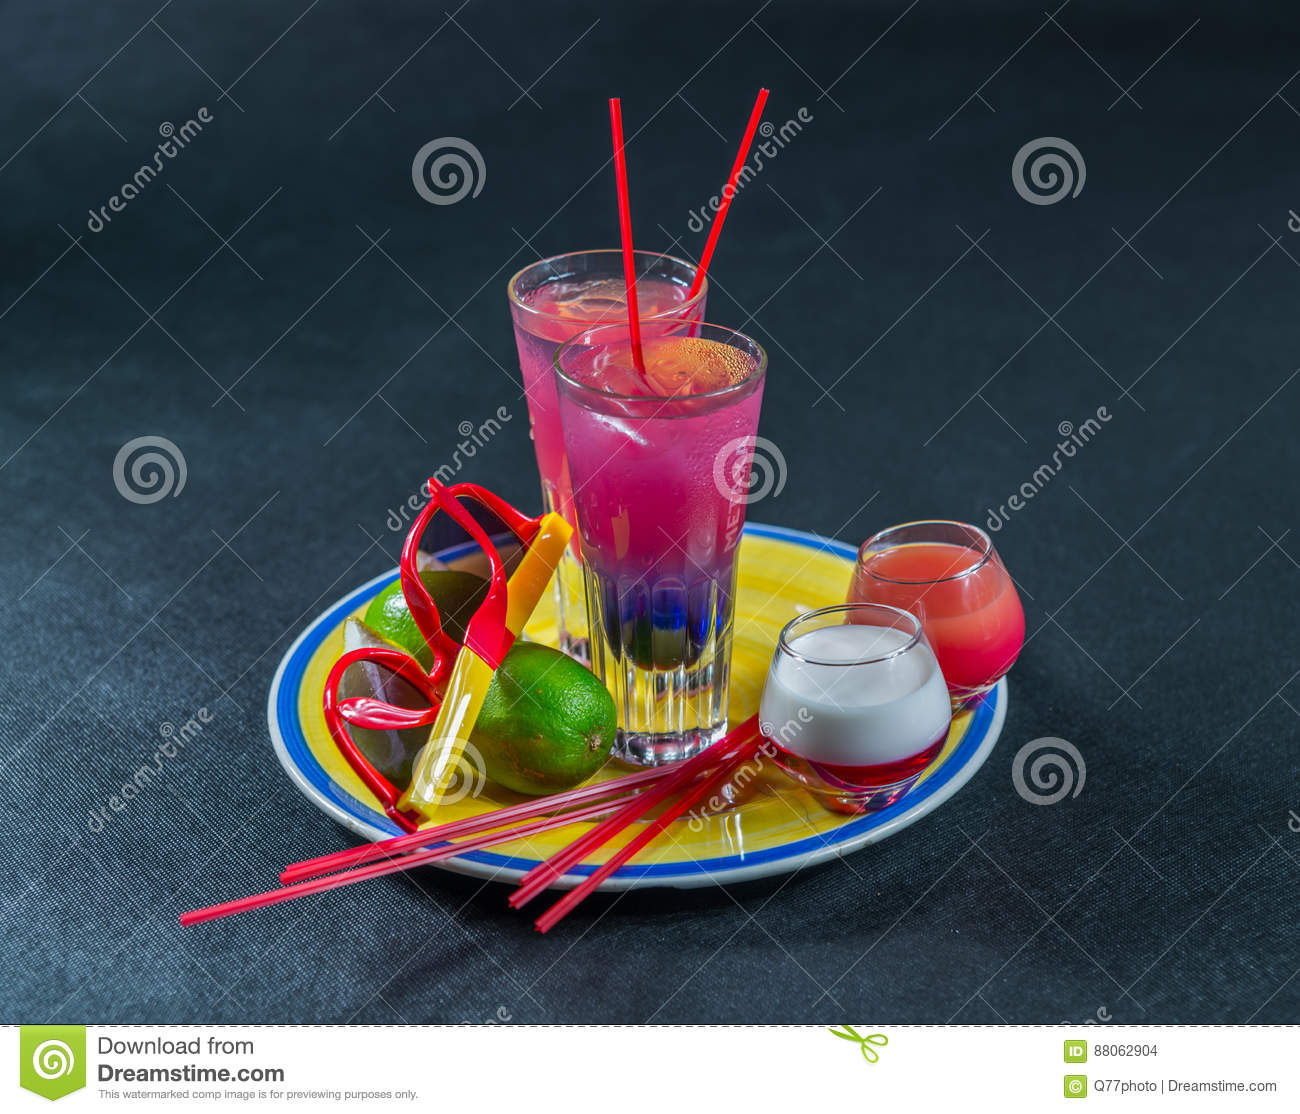 Two colored drinks, a combination of dark blue with purple, the